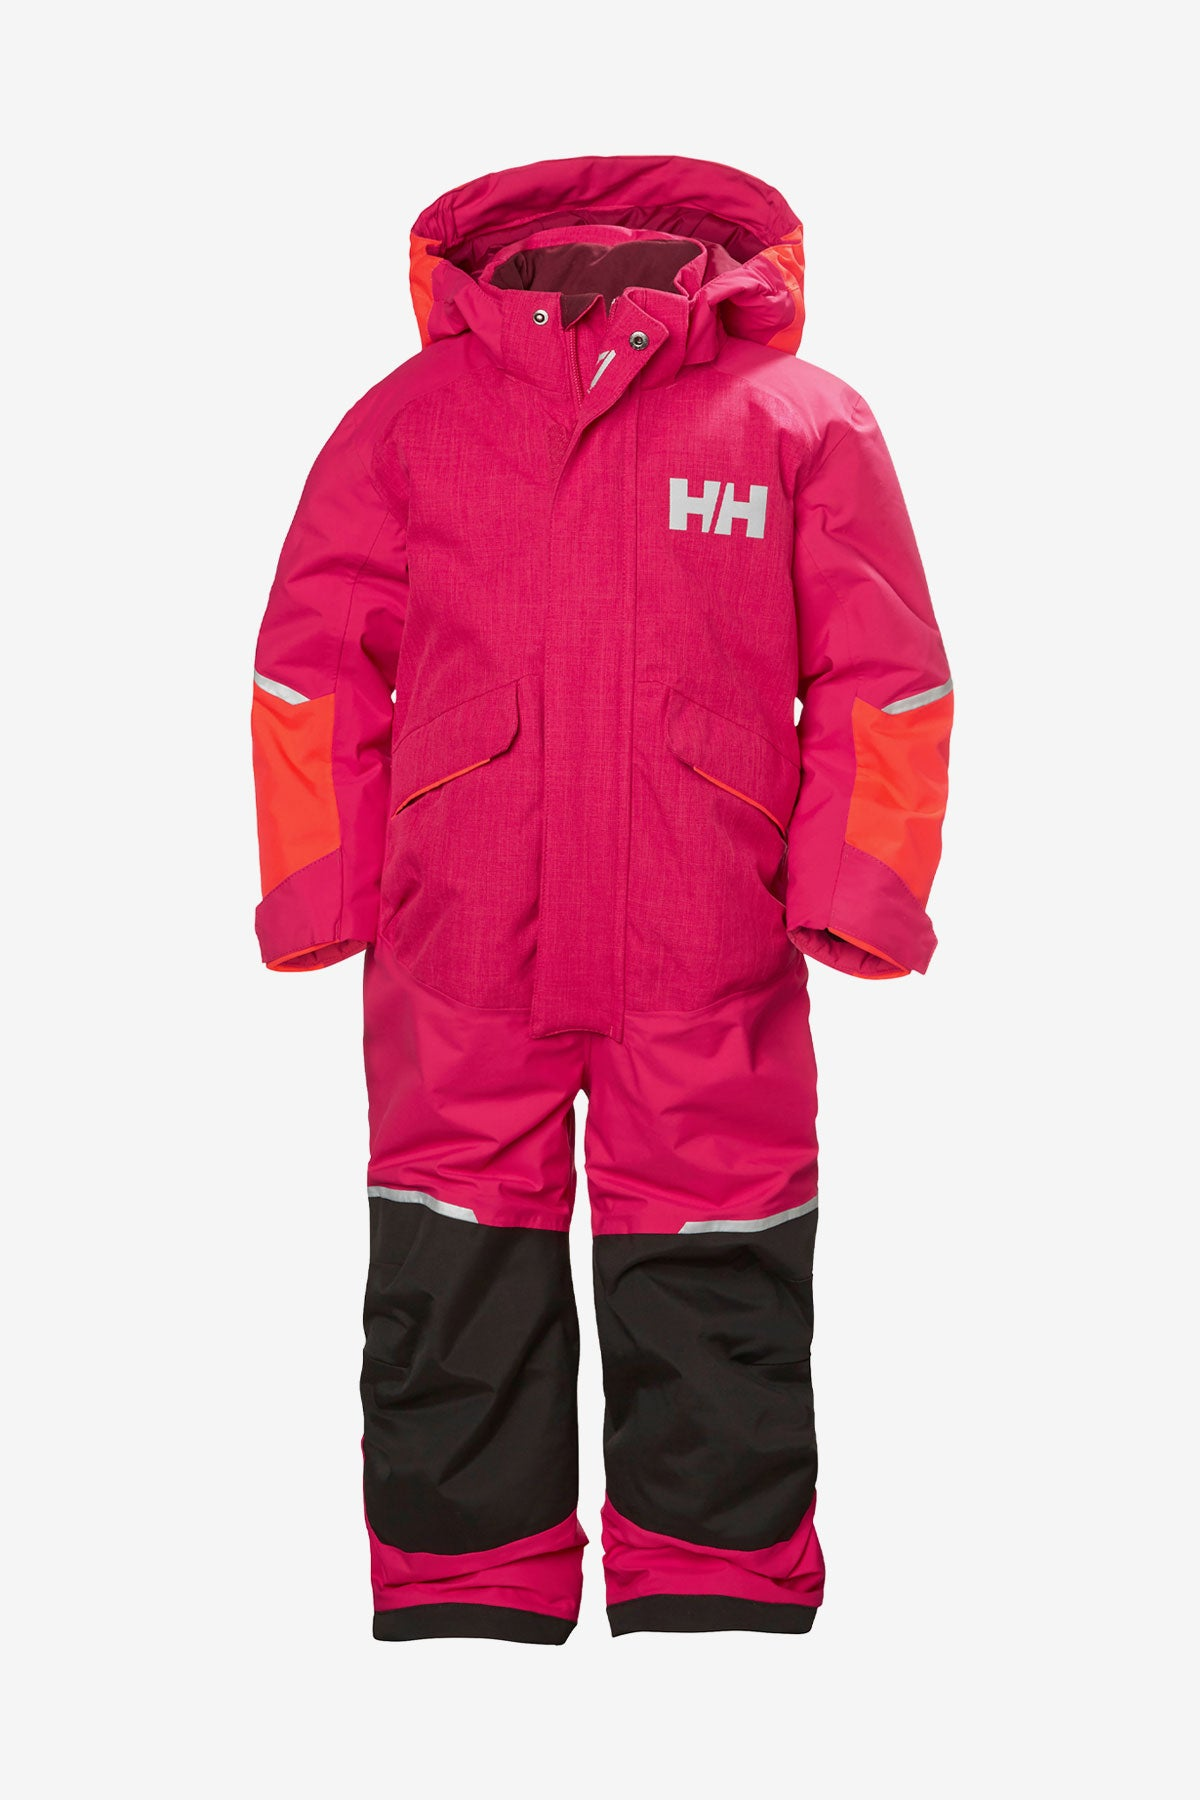 Helly Hansen Snowfall Skisuit - Persian Red